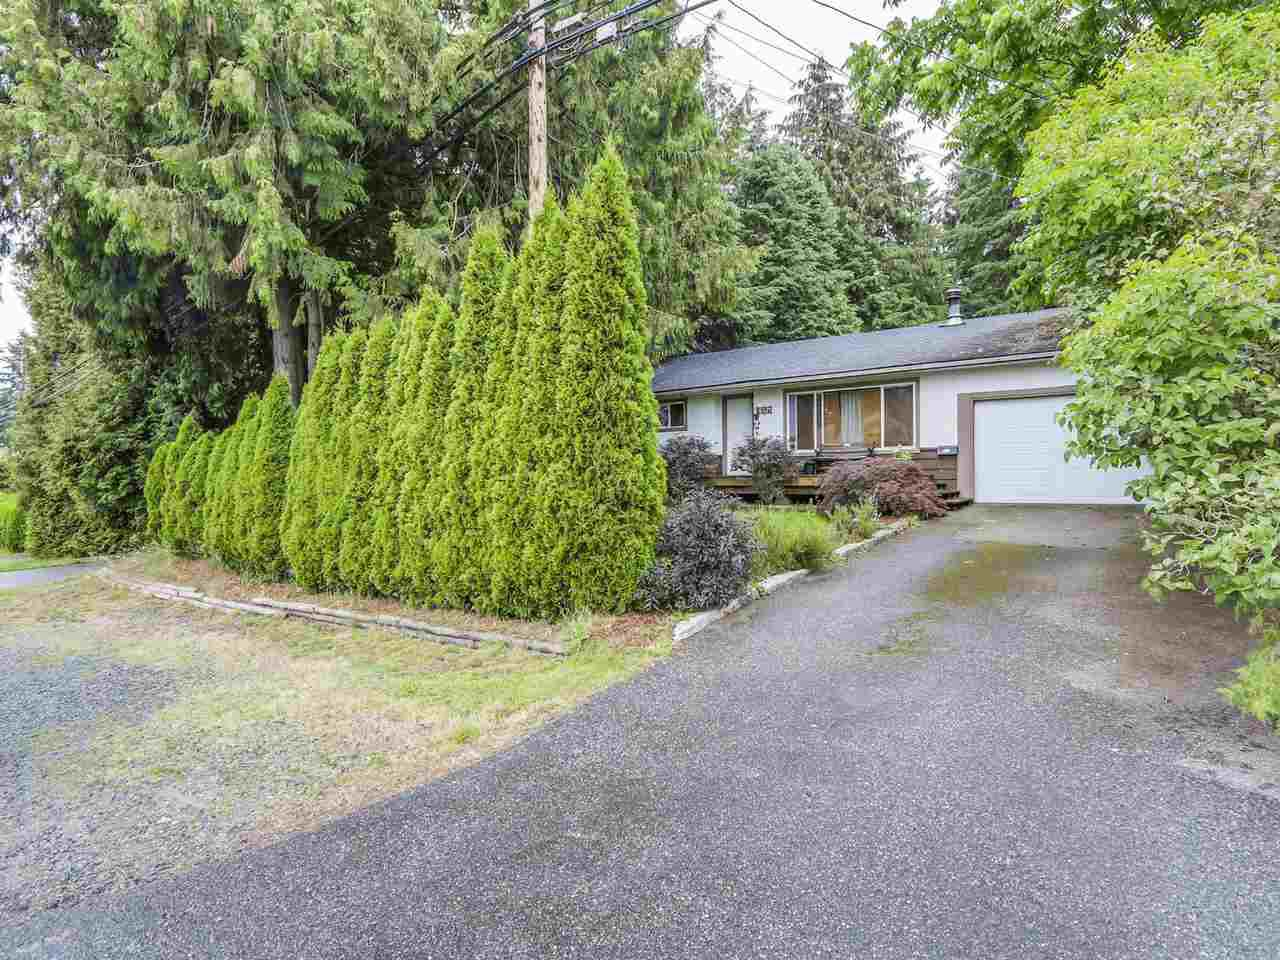 Main Photo: 2068 MCKENZIE Road in Abbotsford: Central Abbotsford House for sale : MLS®# R2087417